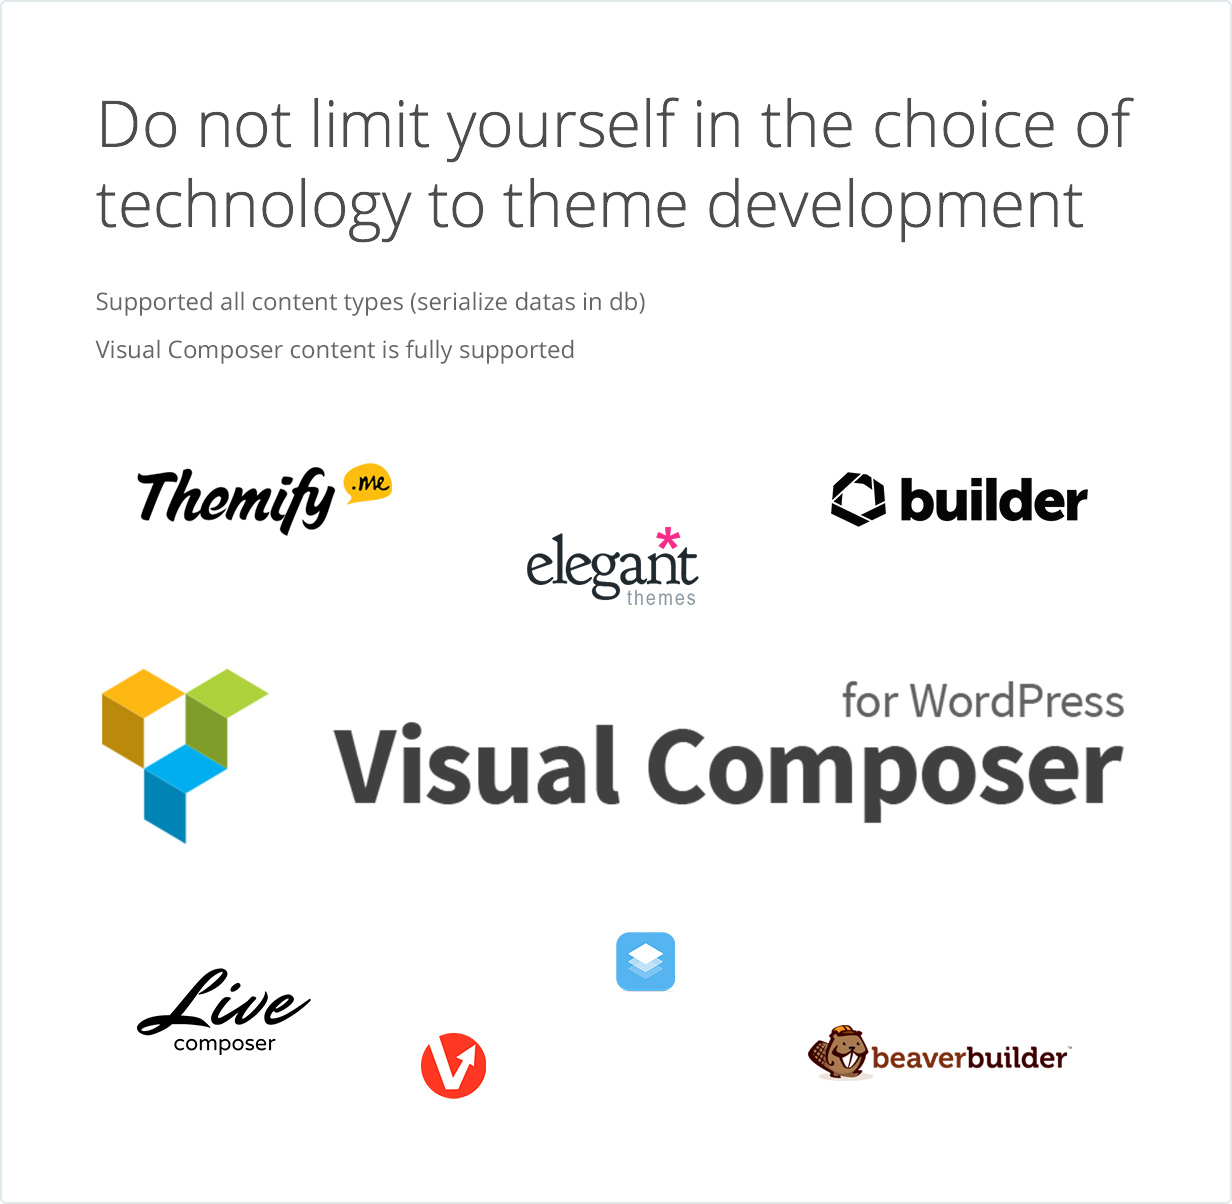 Do not limit yourself in the choice of technology to theme development